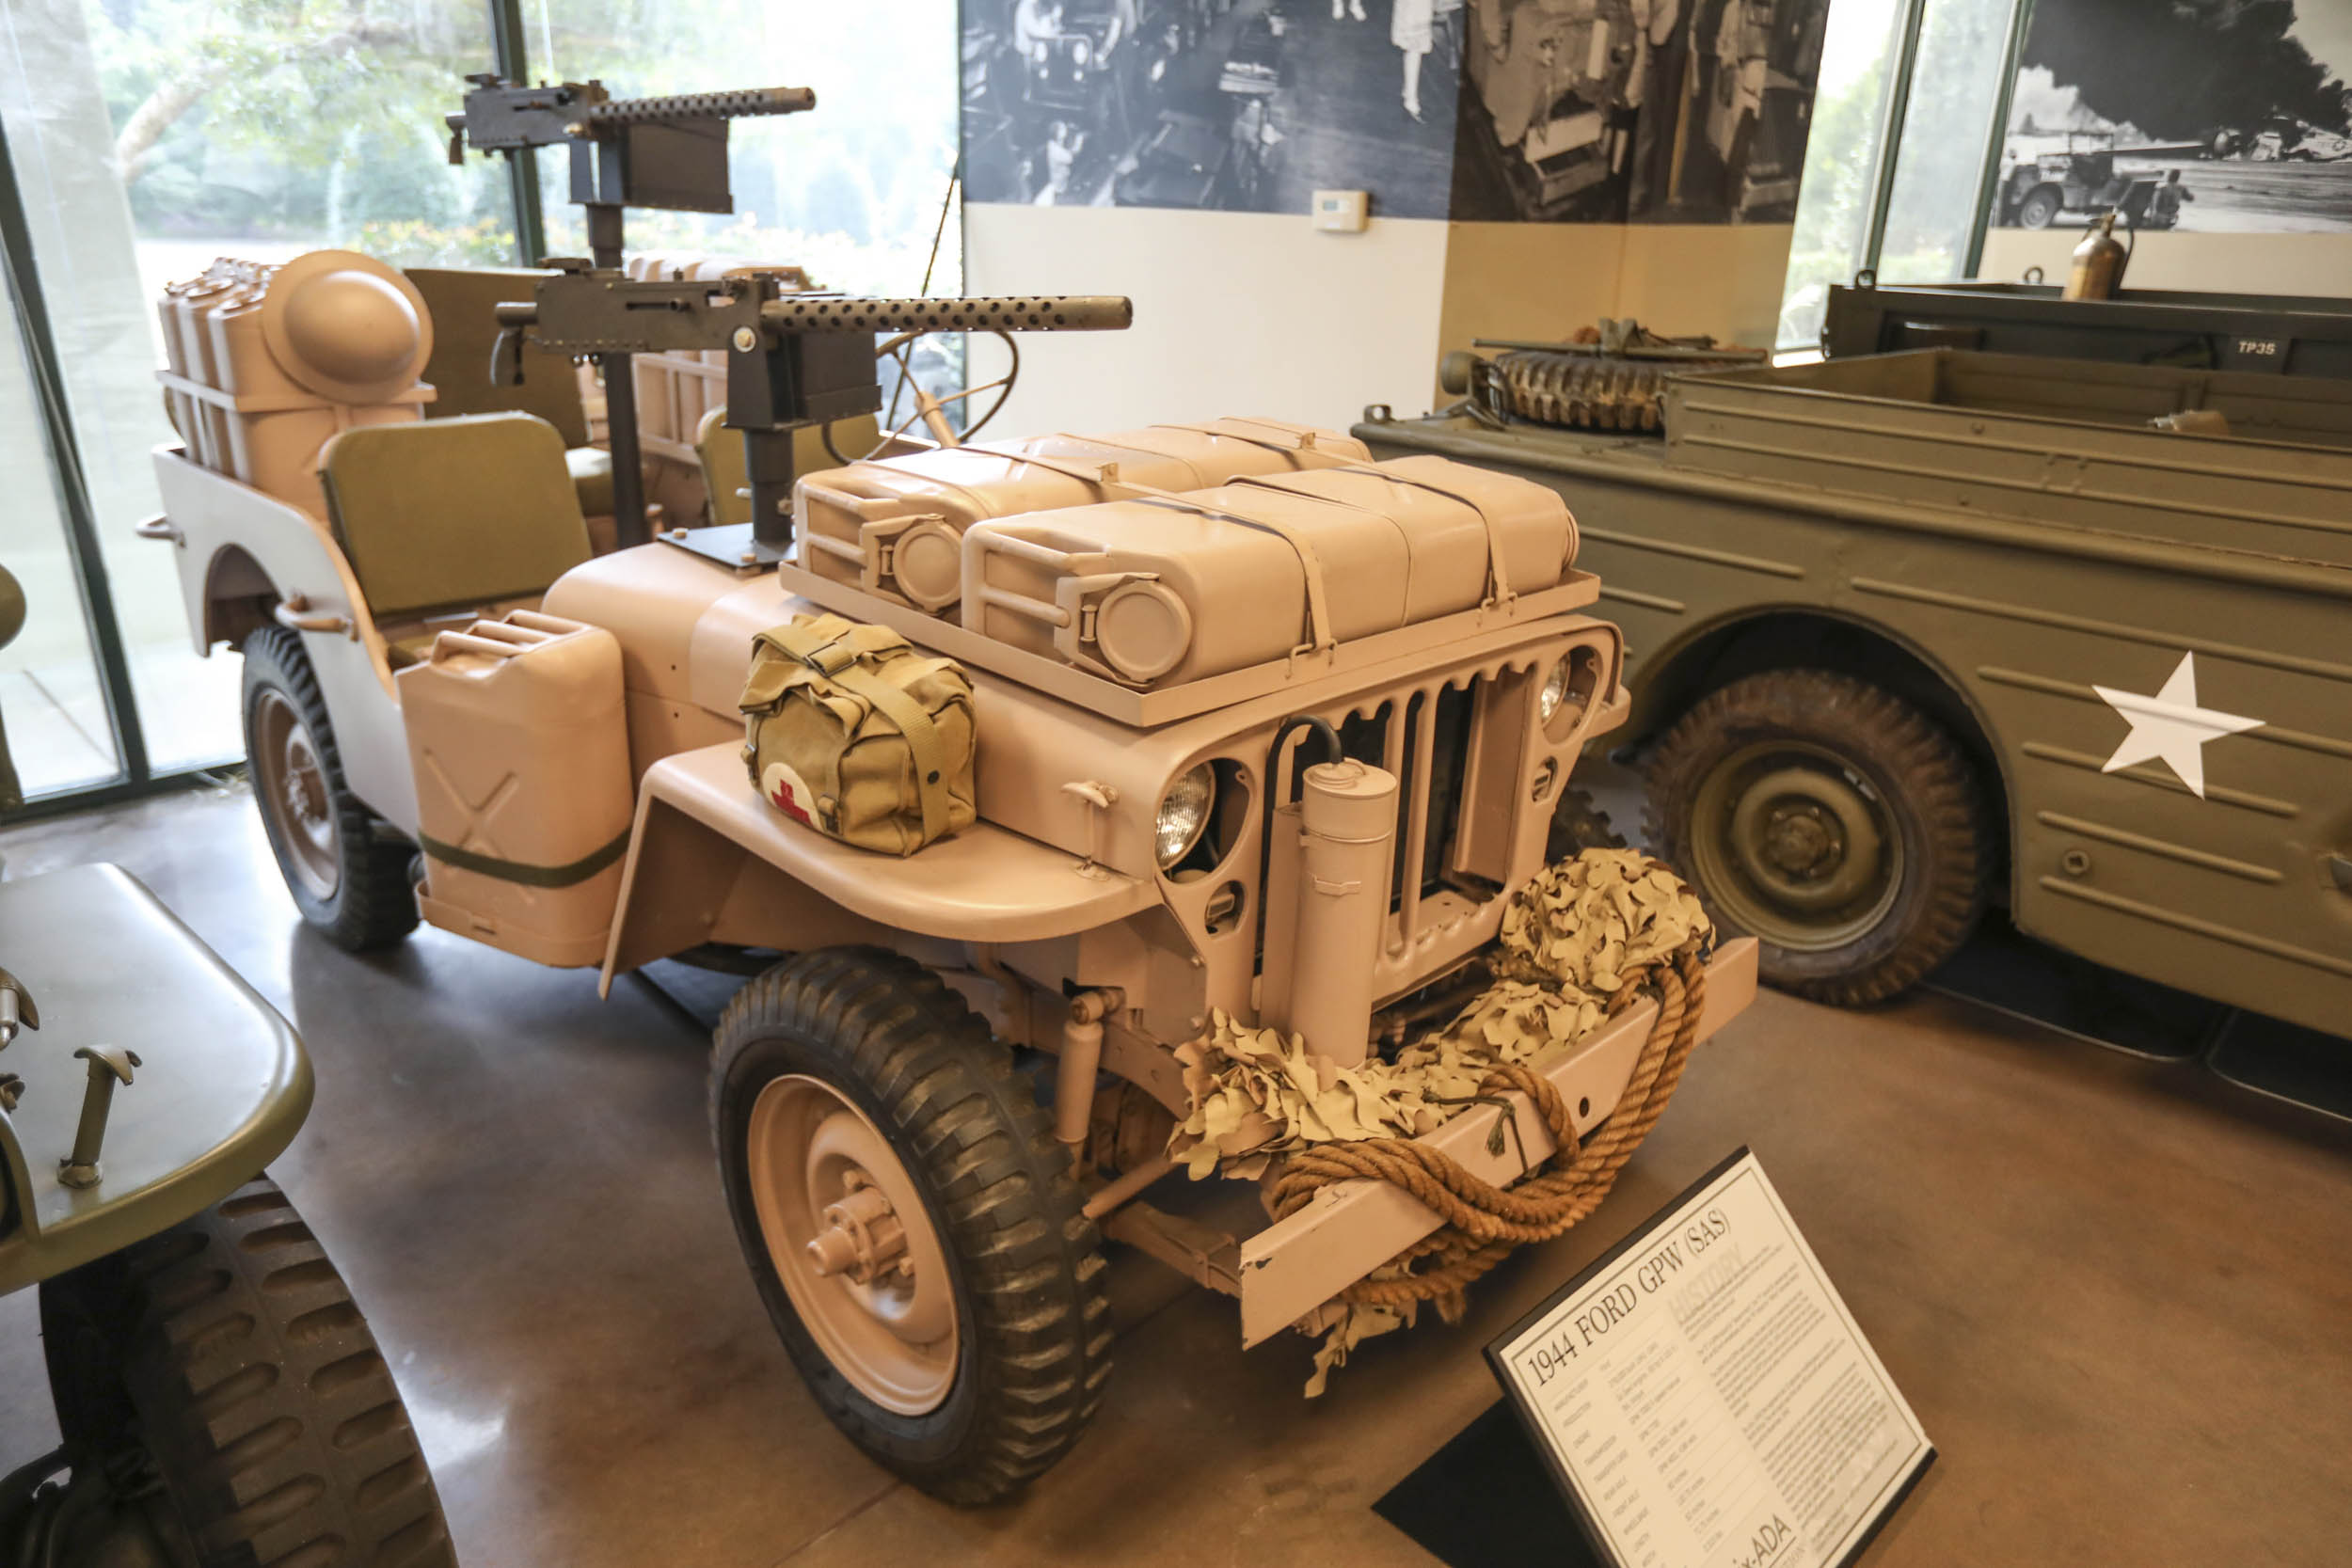 This Ford GPW is modeled after the ones used by the British Long Range Desert Group to wage war against Erwin Rommel's troops in northern Africa during WWII.